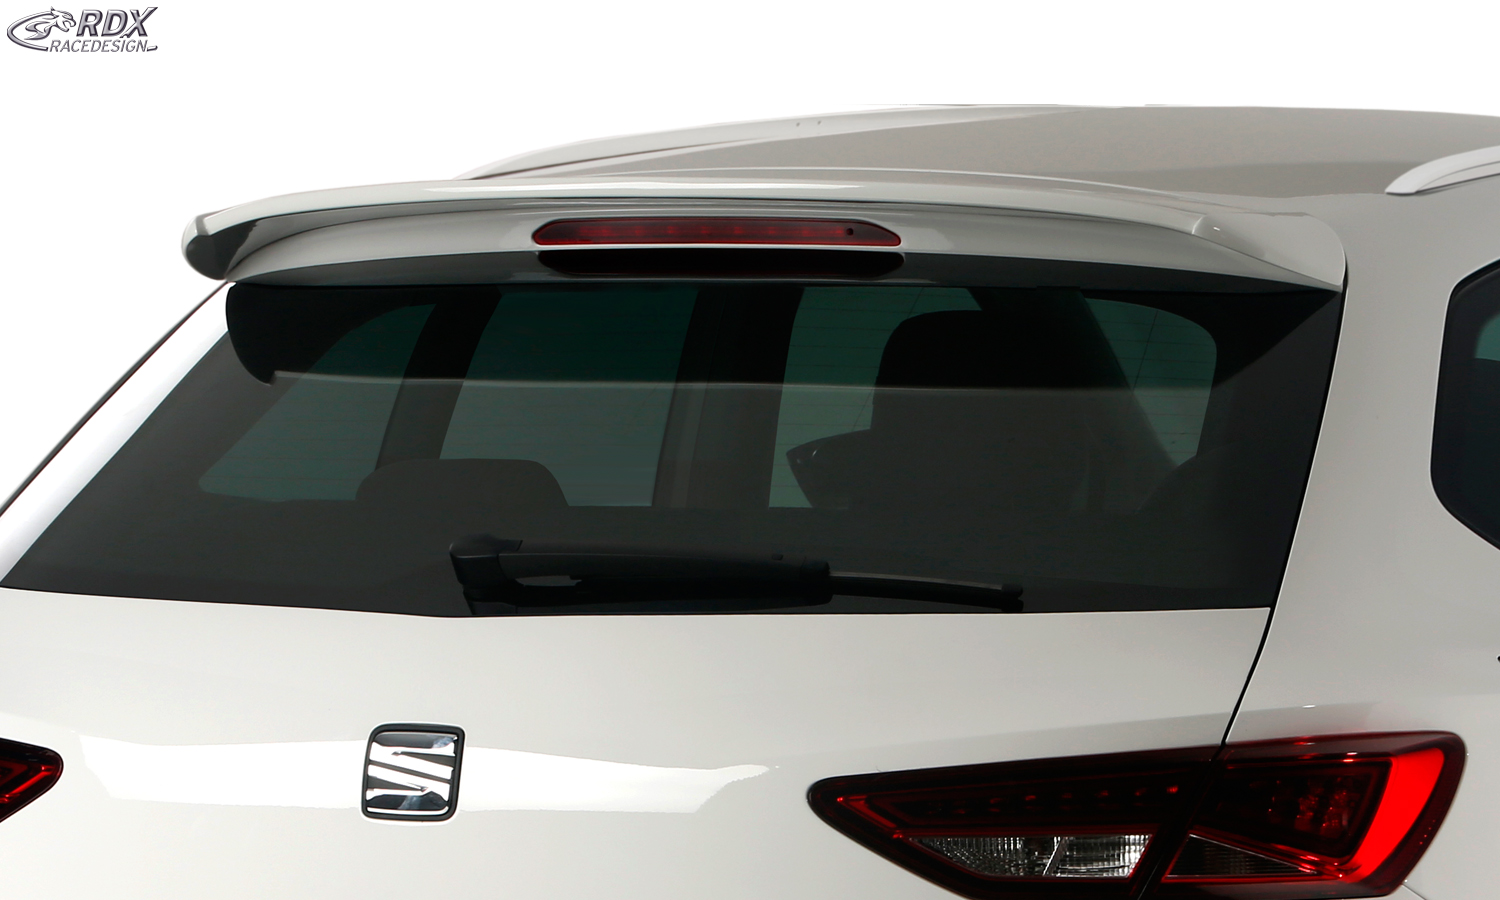 rdx heckspoiler seat leon 5f st kombi incl fr dachspoiler spoiler ebay. Black Bedroom Furniture Sets. Home Design Ideas